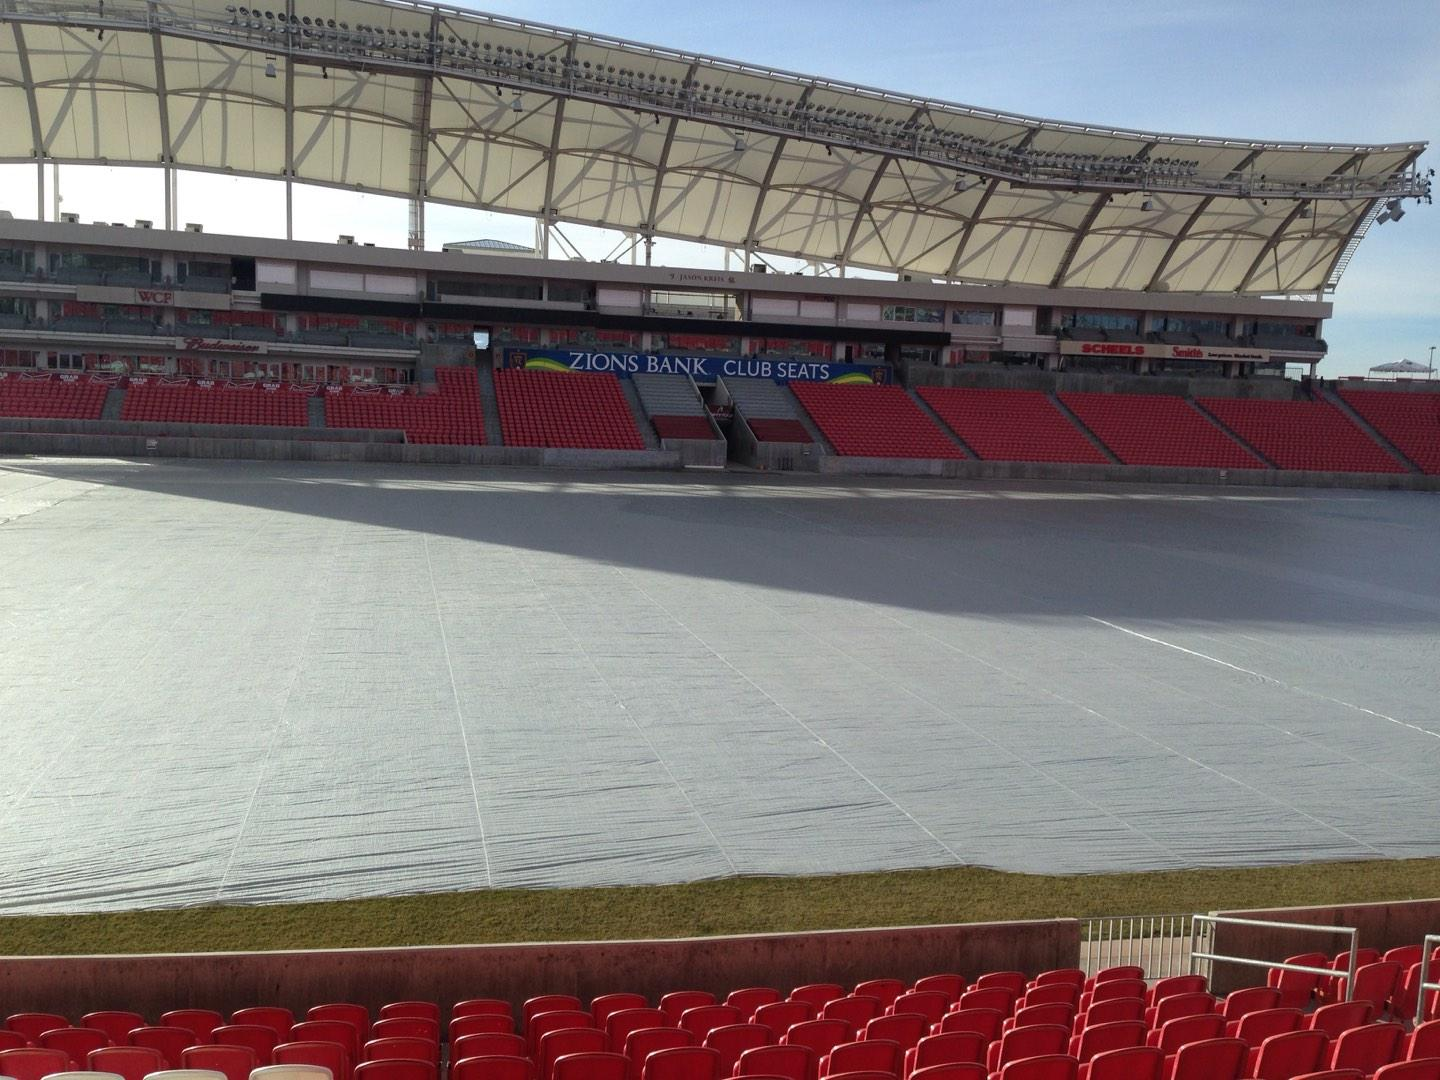 Rio Tinto Stadium Section 3 Row p Seat 15